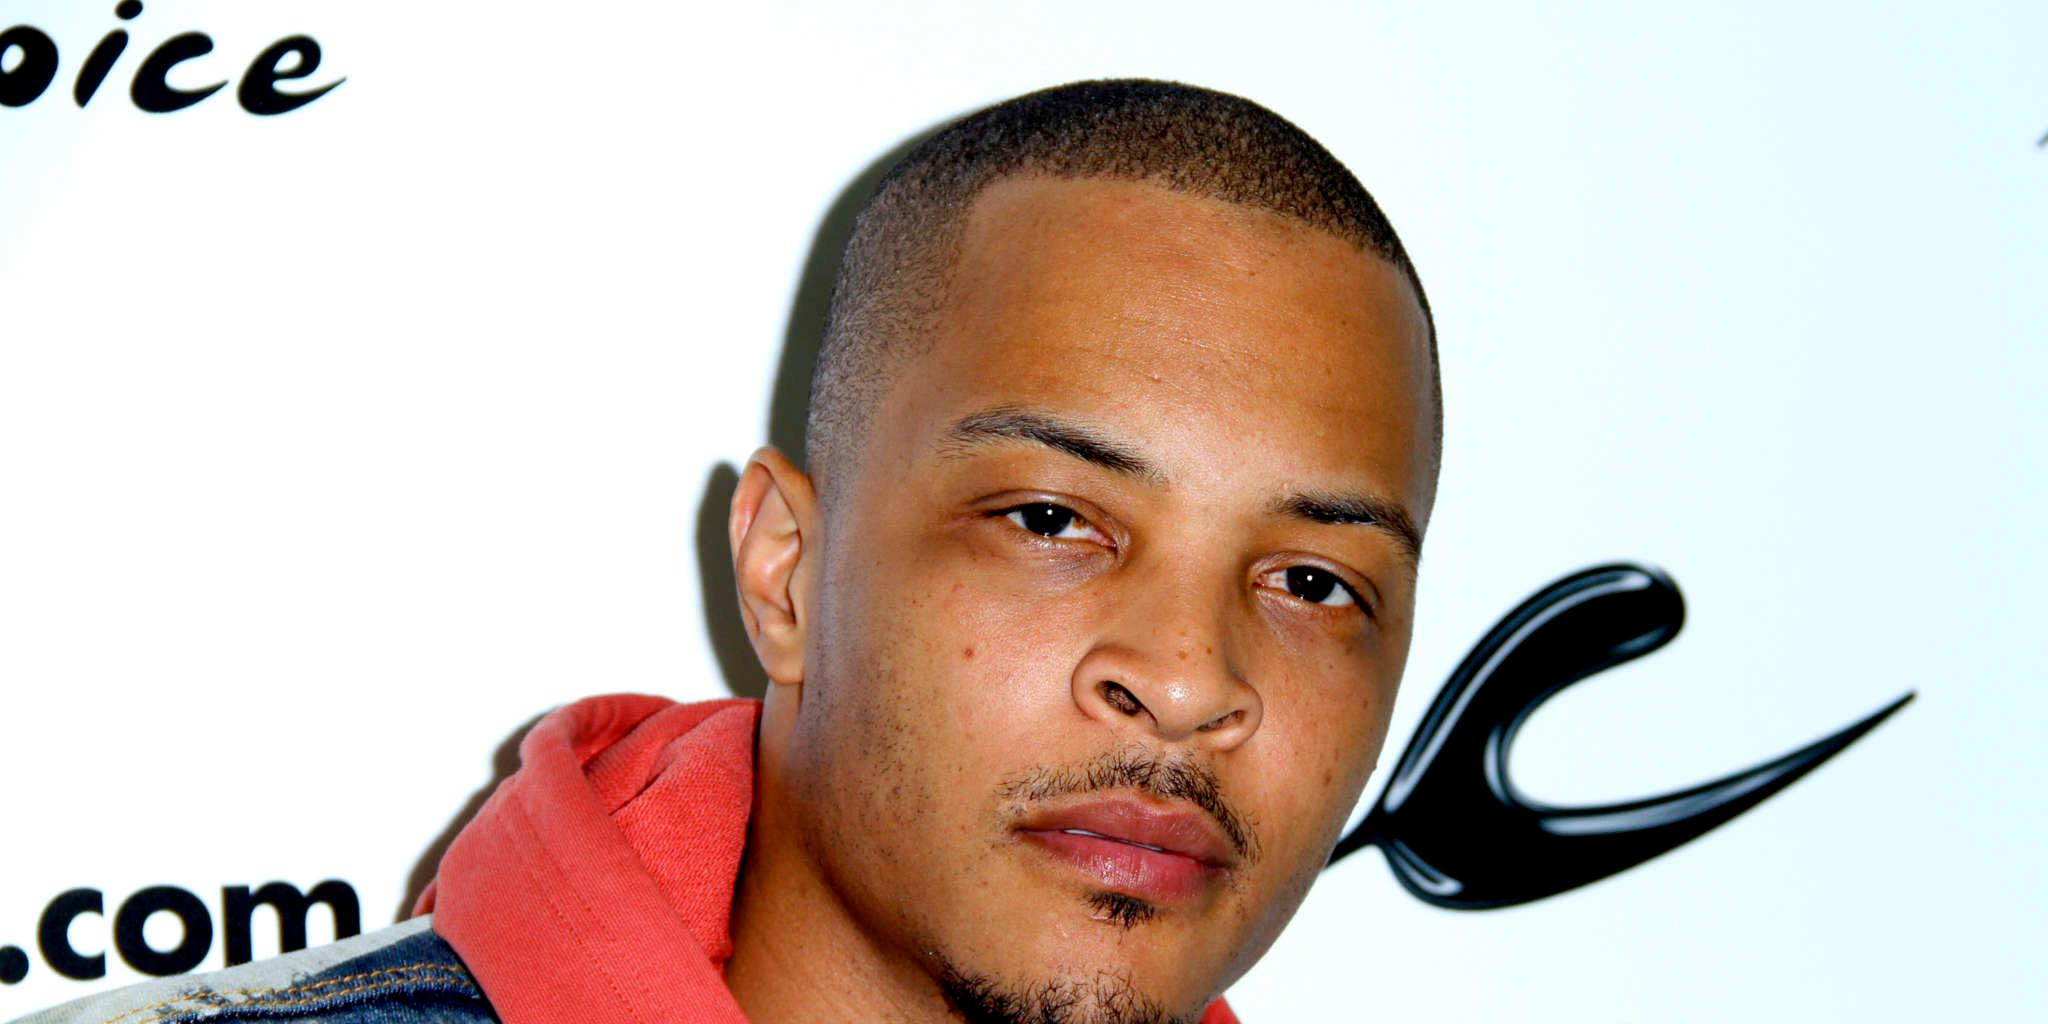 T.I. Is Another Celebrity Who Is Outraged By The George Floyd Case Involving Police Brutality